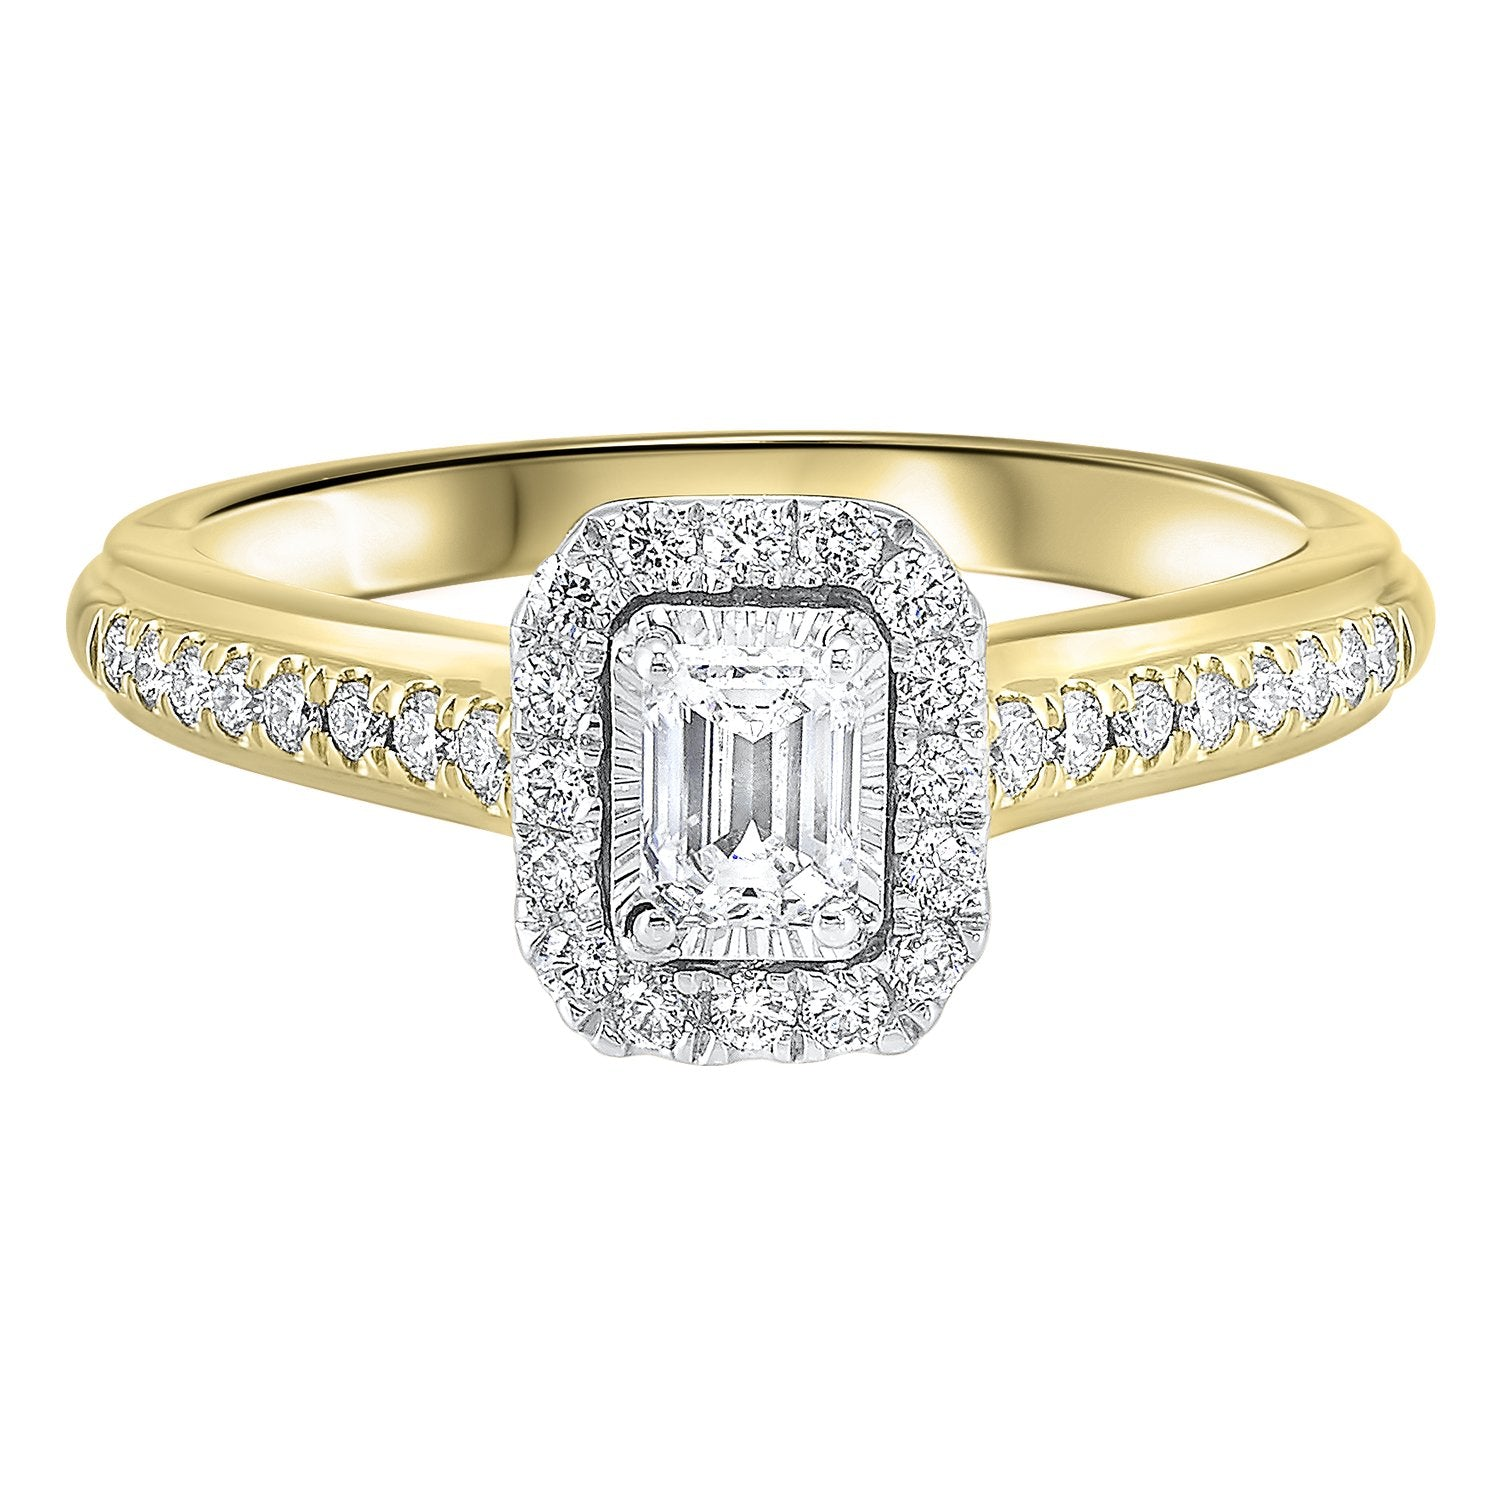 14K Two-Tone White/Yellow 1/2ctw Emerald Cut Ring with 1/3 center